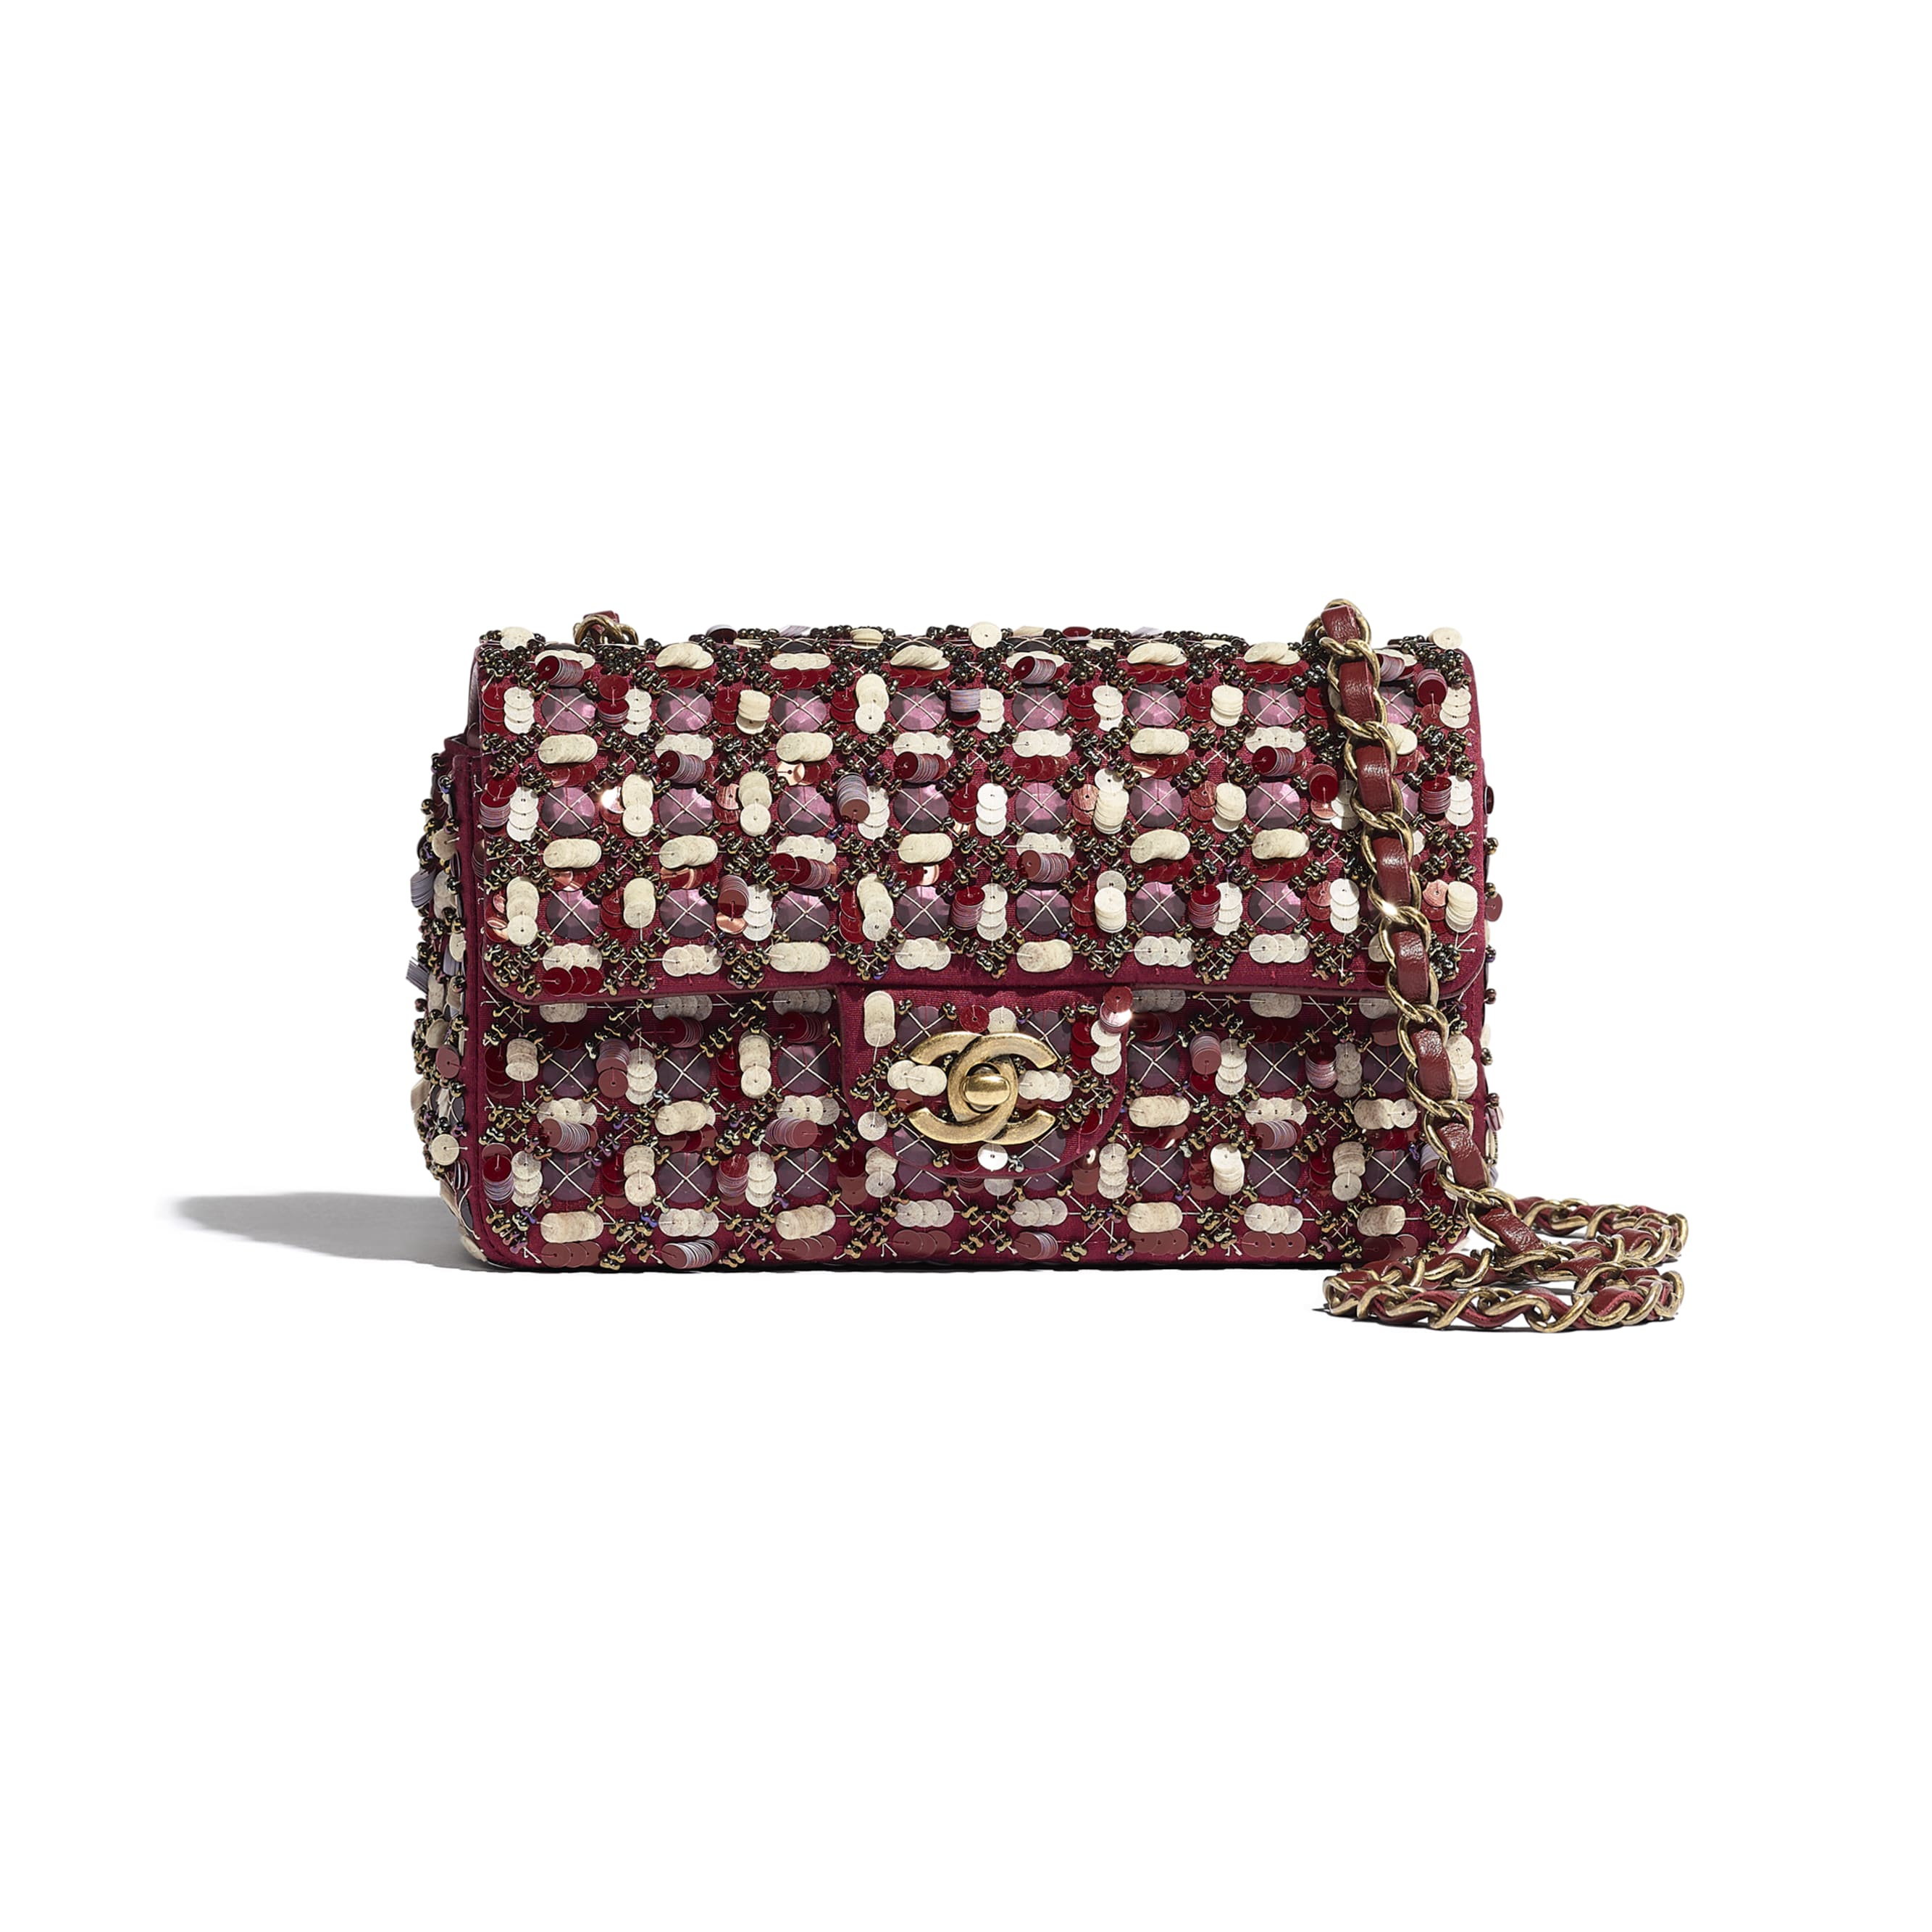 Mini Flap Bag - Burgundy, Pink & White - Satin, Sequins, Glass Pearls & Gold-Tone Metal - CHANEL - Default view - see standard sized version